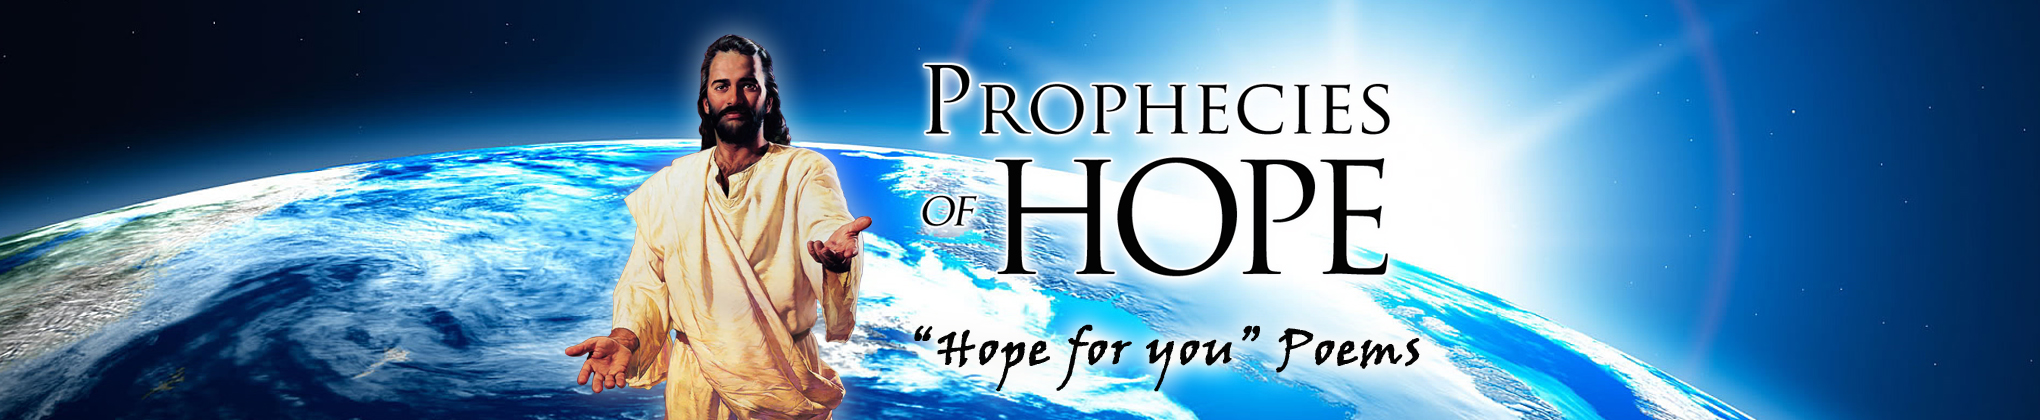 Prophecies of HOPE Web banner2